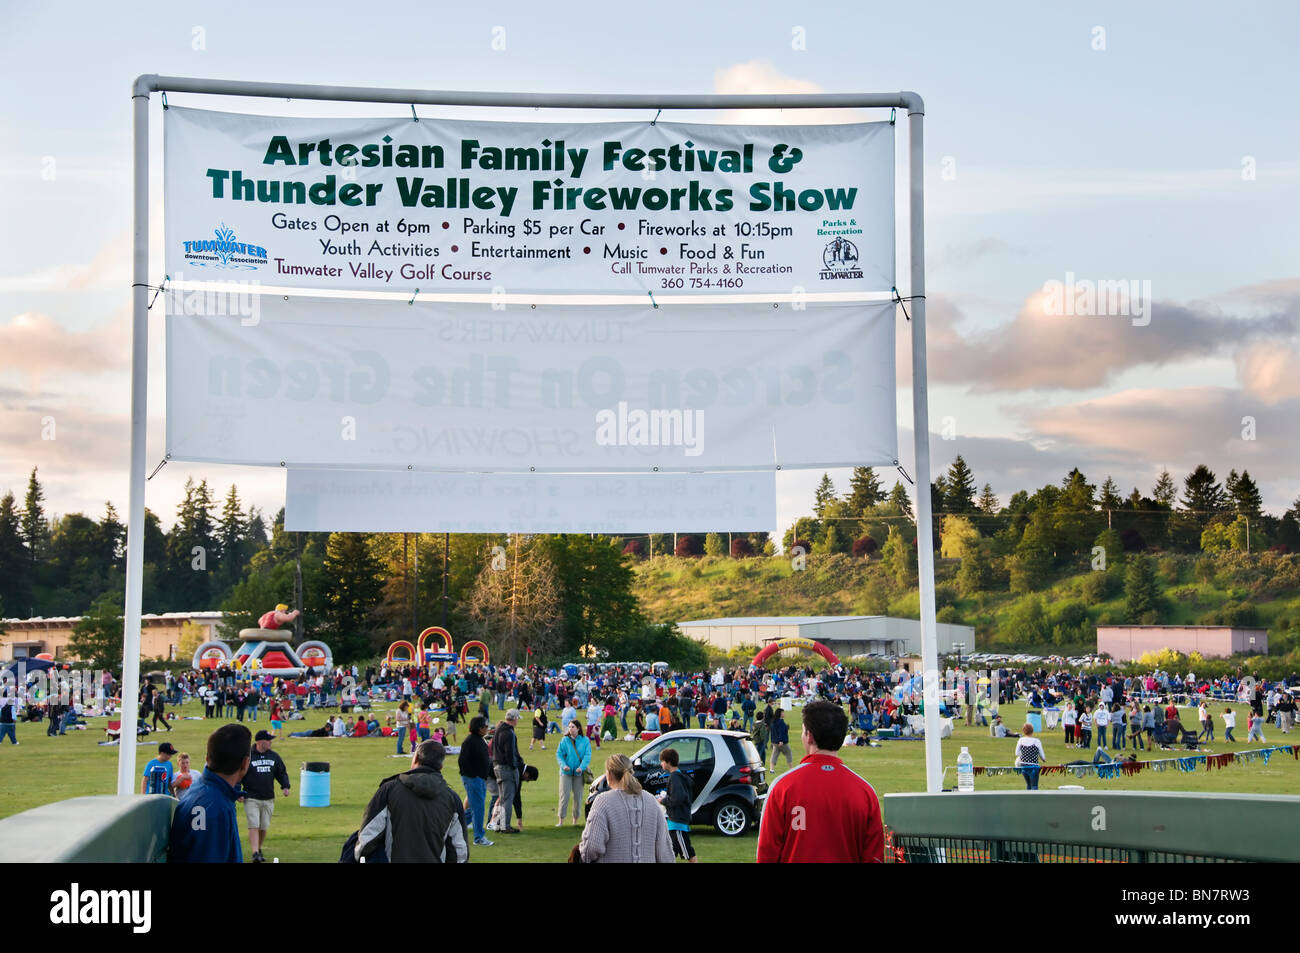 Banner and crowd at the Tumwater Valley golf course during the annual Artesian Family Festival on the 4th of July. - Stock Image